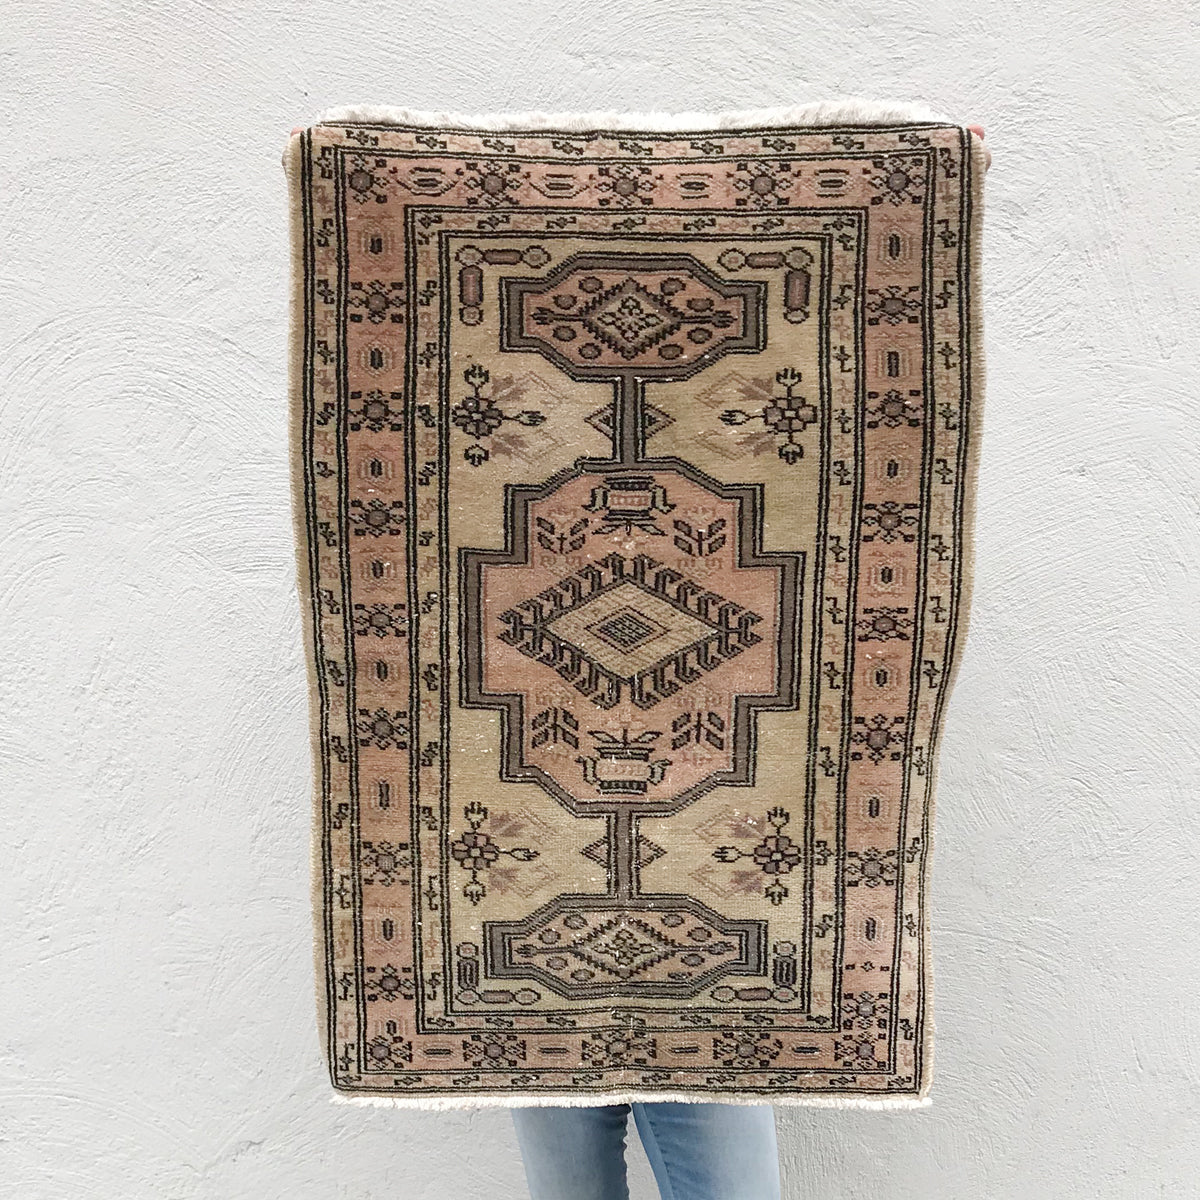 This small handwoven vintage Turkish rug has great blush colors. Great for entryways, bathrooms, kitchens and layering. 24x33 inches.